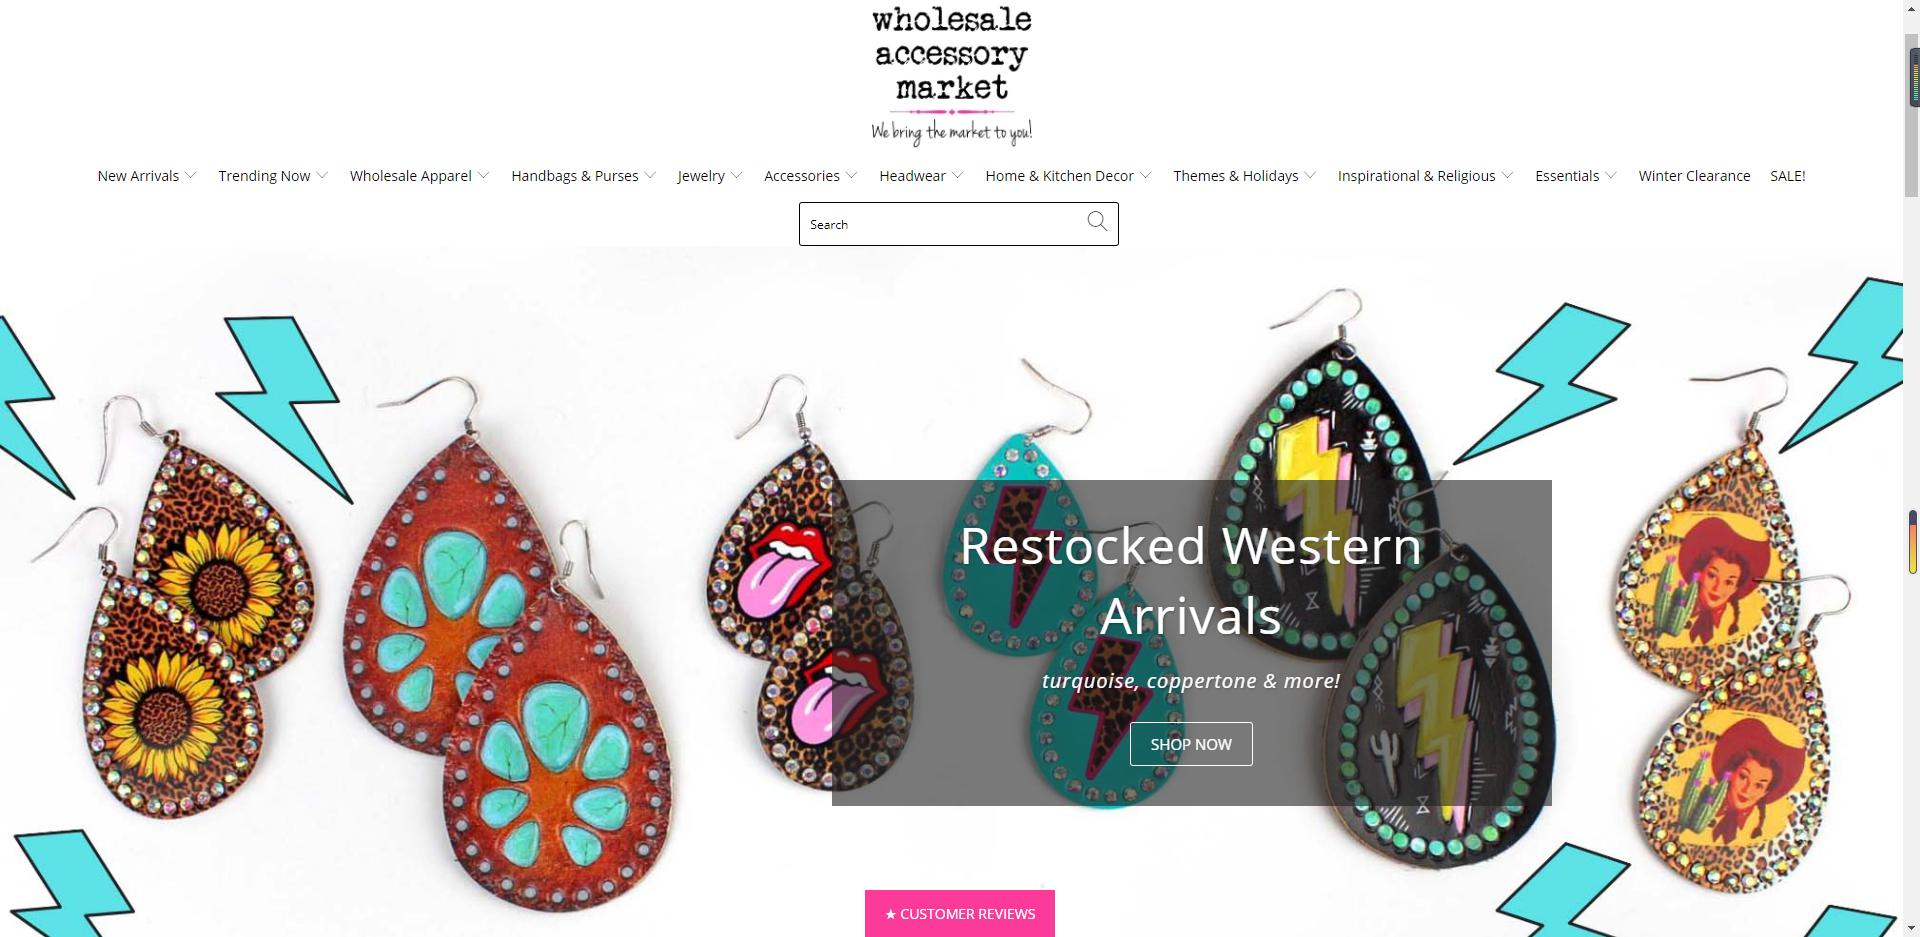 wholesale accessory market home page